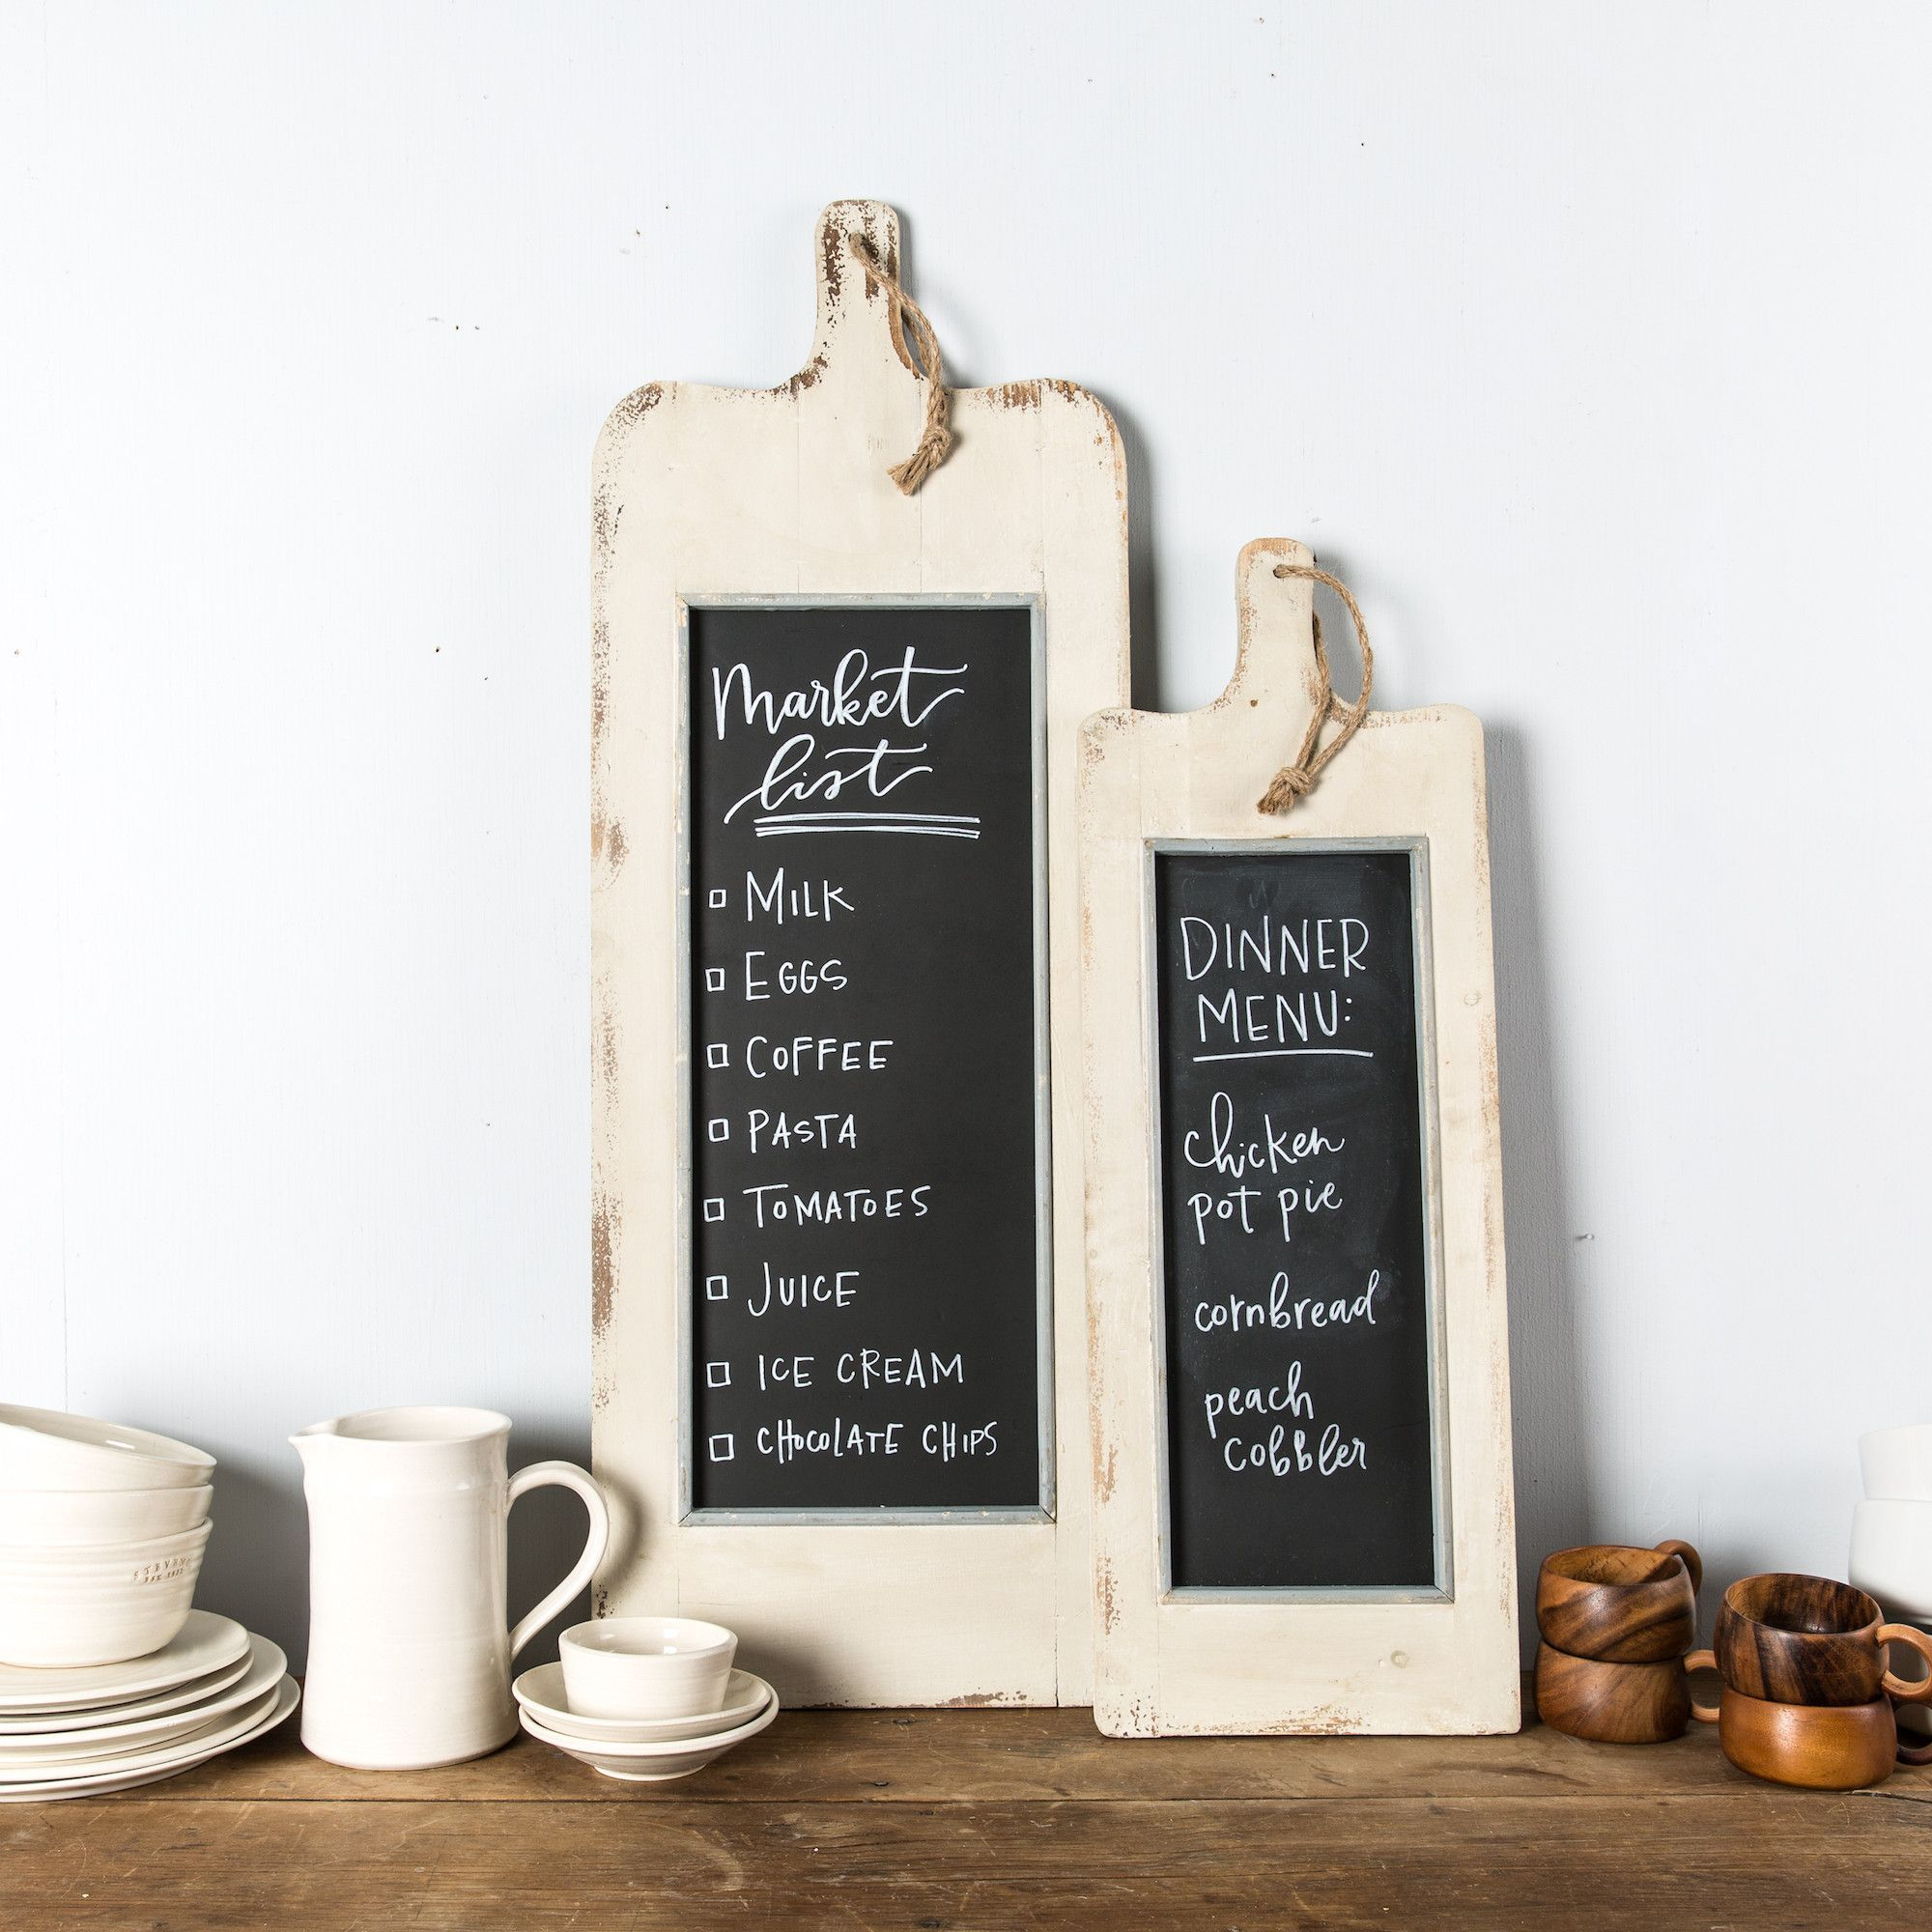 White Paddle Chalkboard | Joanna gaines, Magnolia and Chalkboards